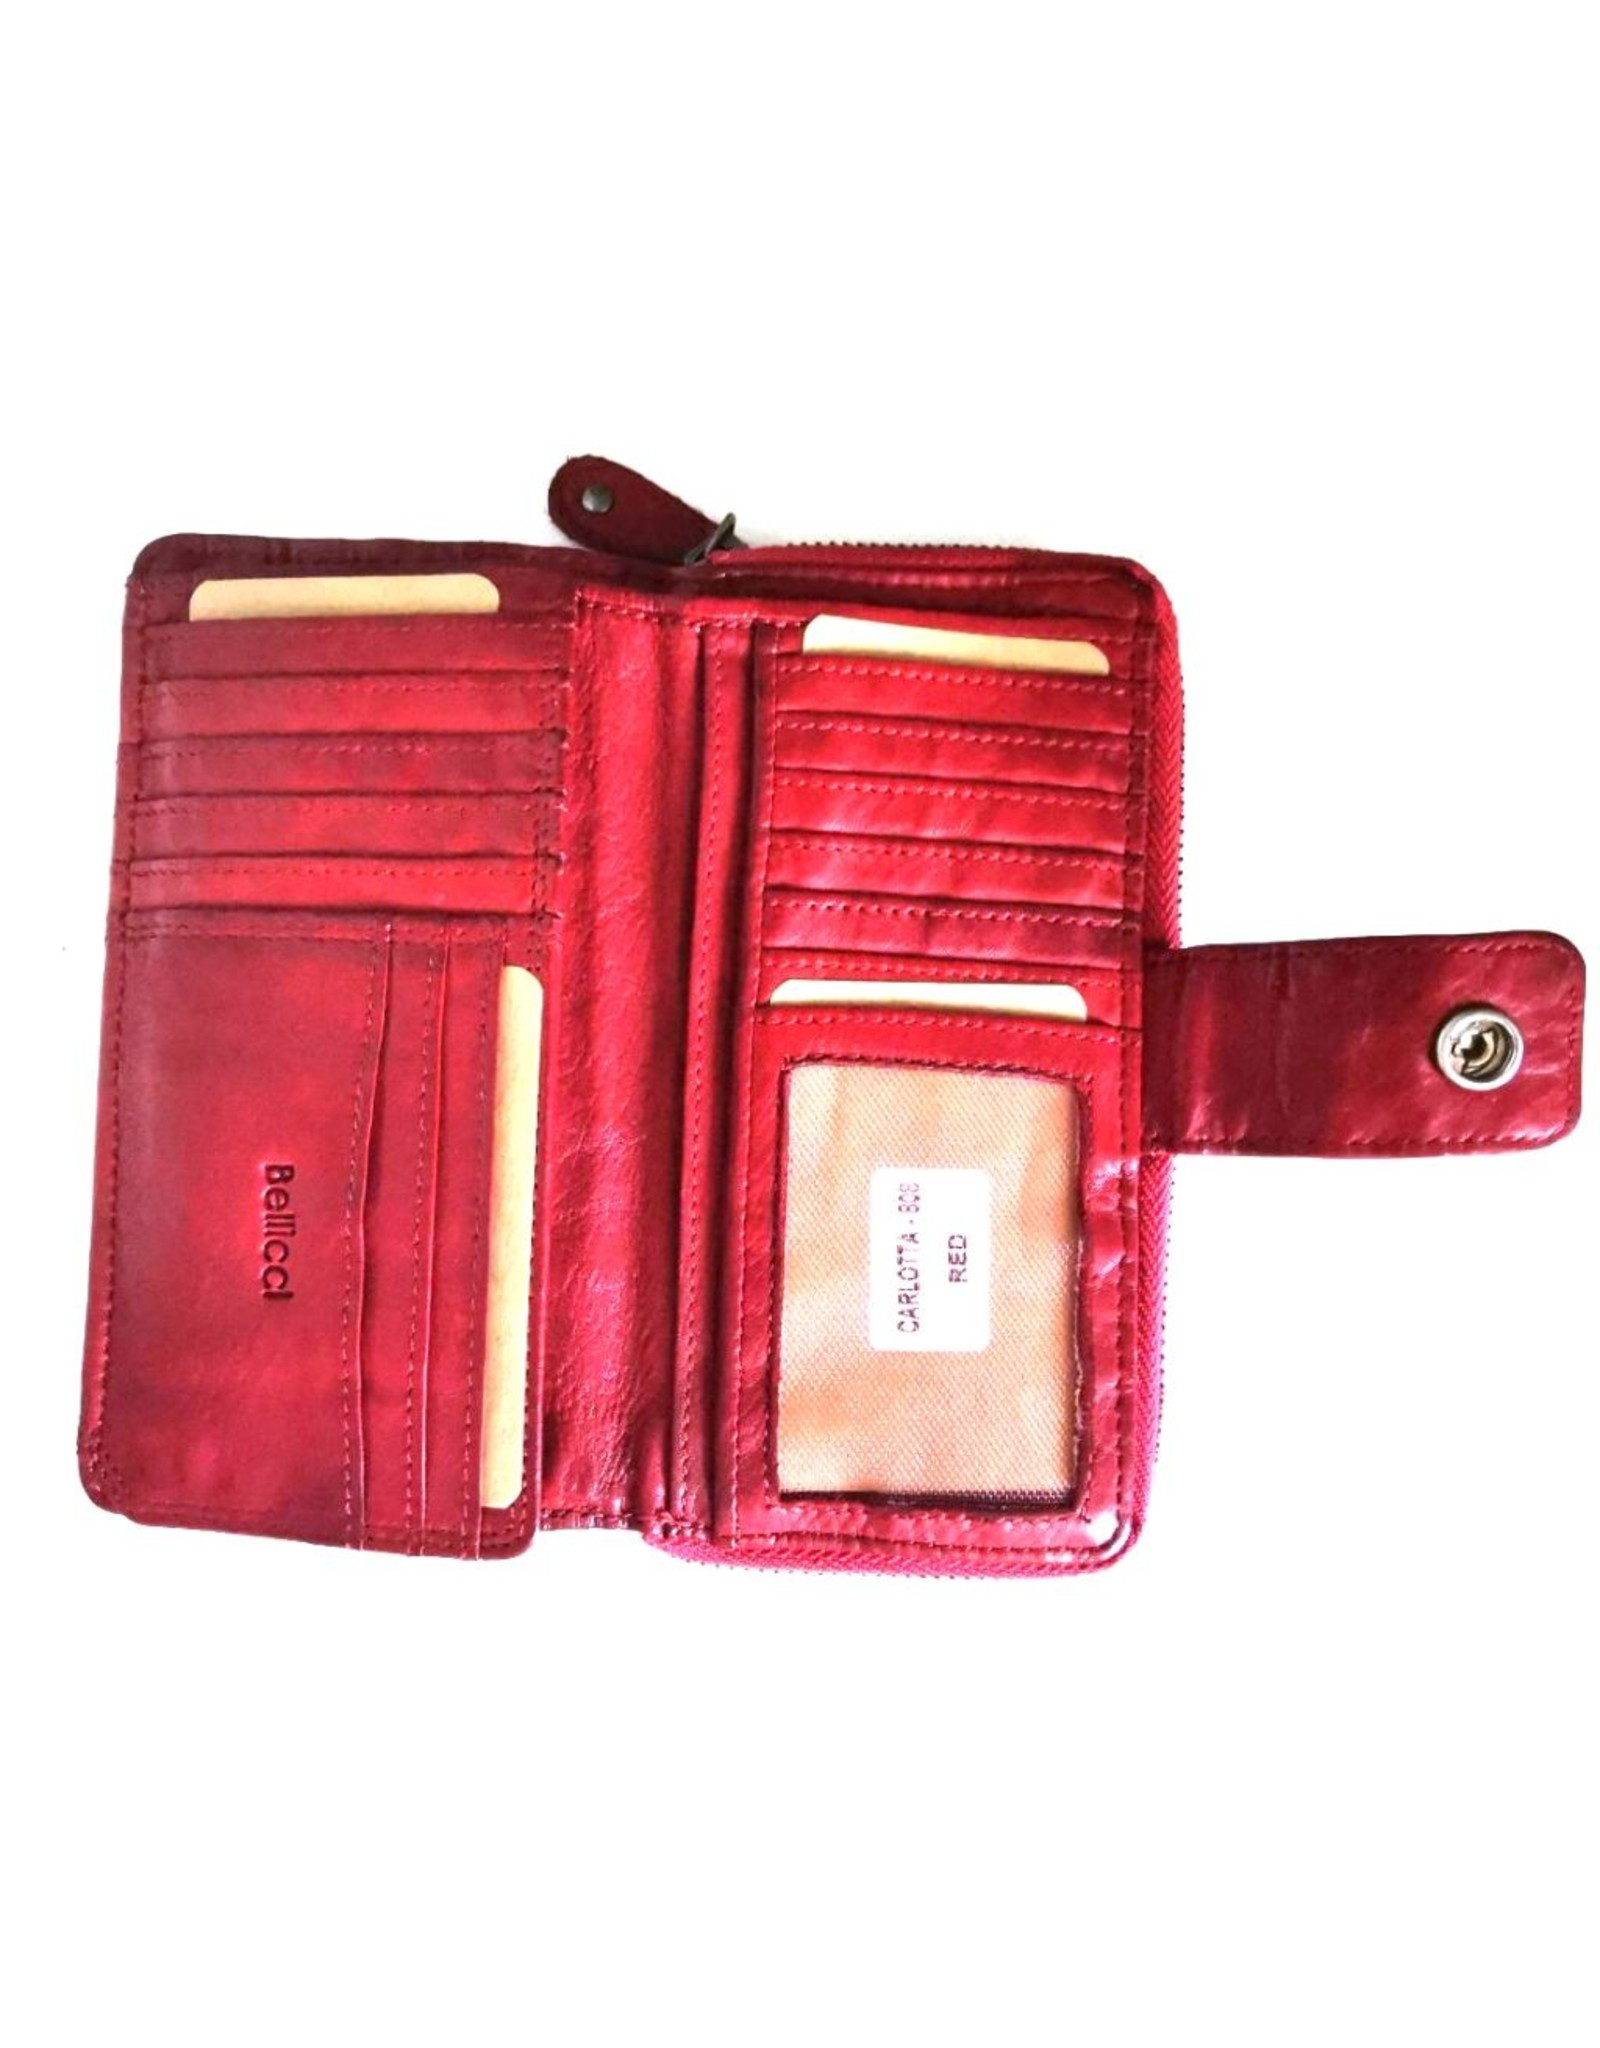 Bellicci Leather Wallets - Leather wallet braided washed leather Bellicci (red)